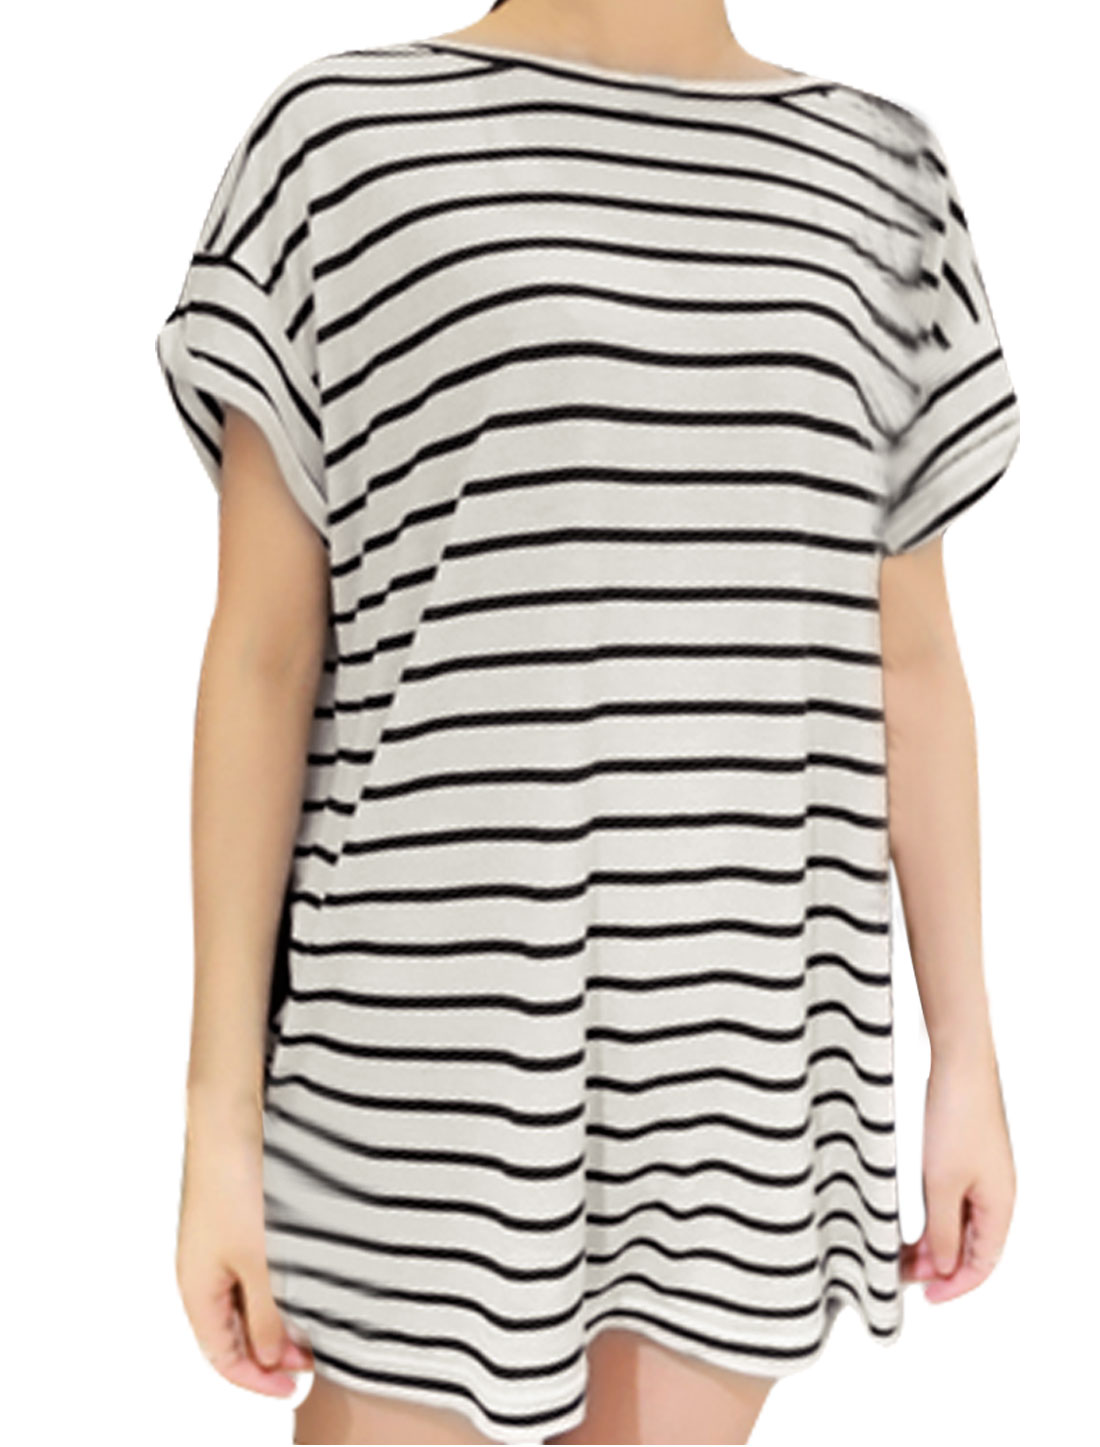 Lady Stripes Prints Short-sleeved Textured Tops Blouses Black White M